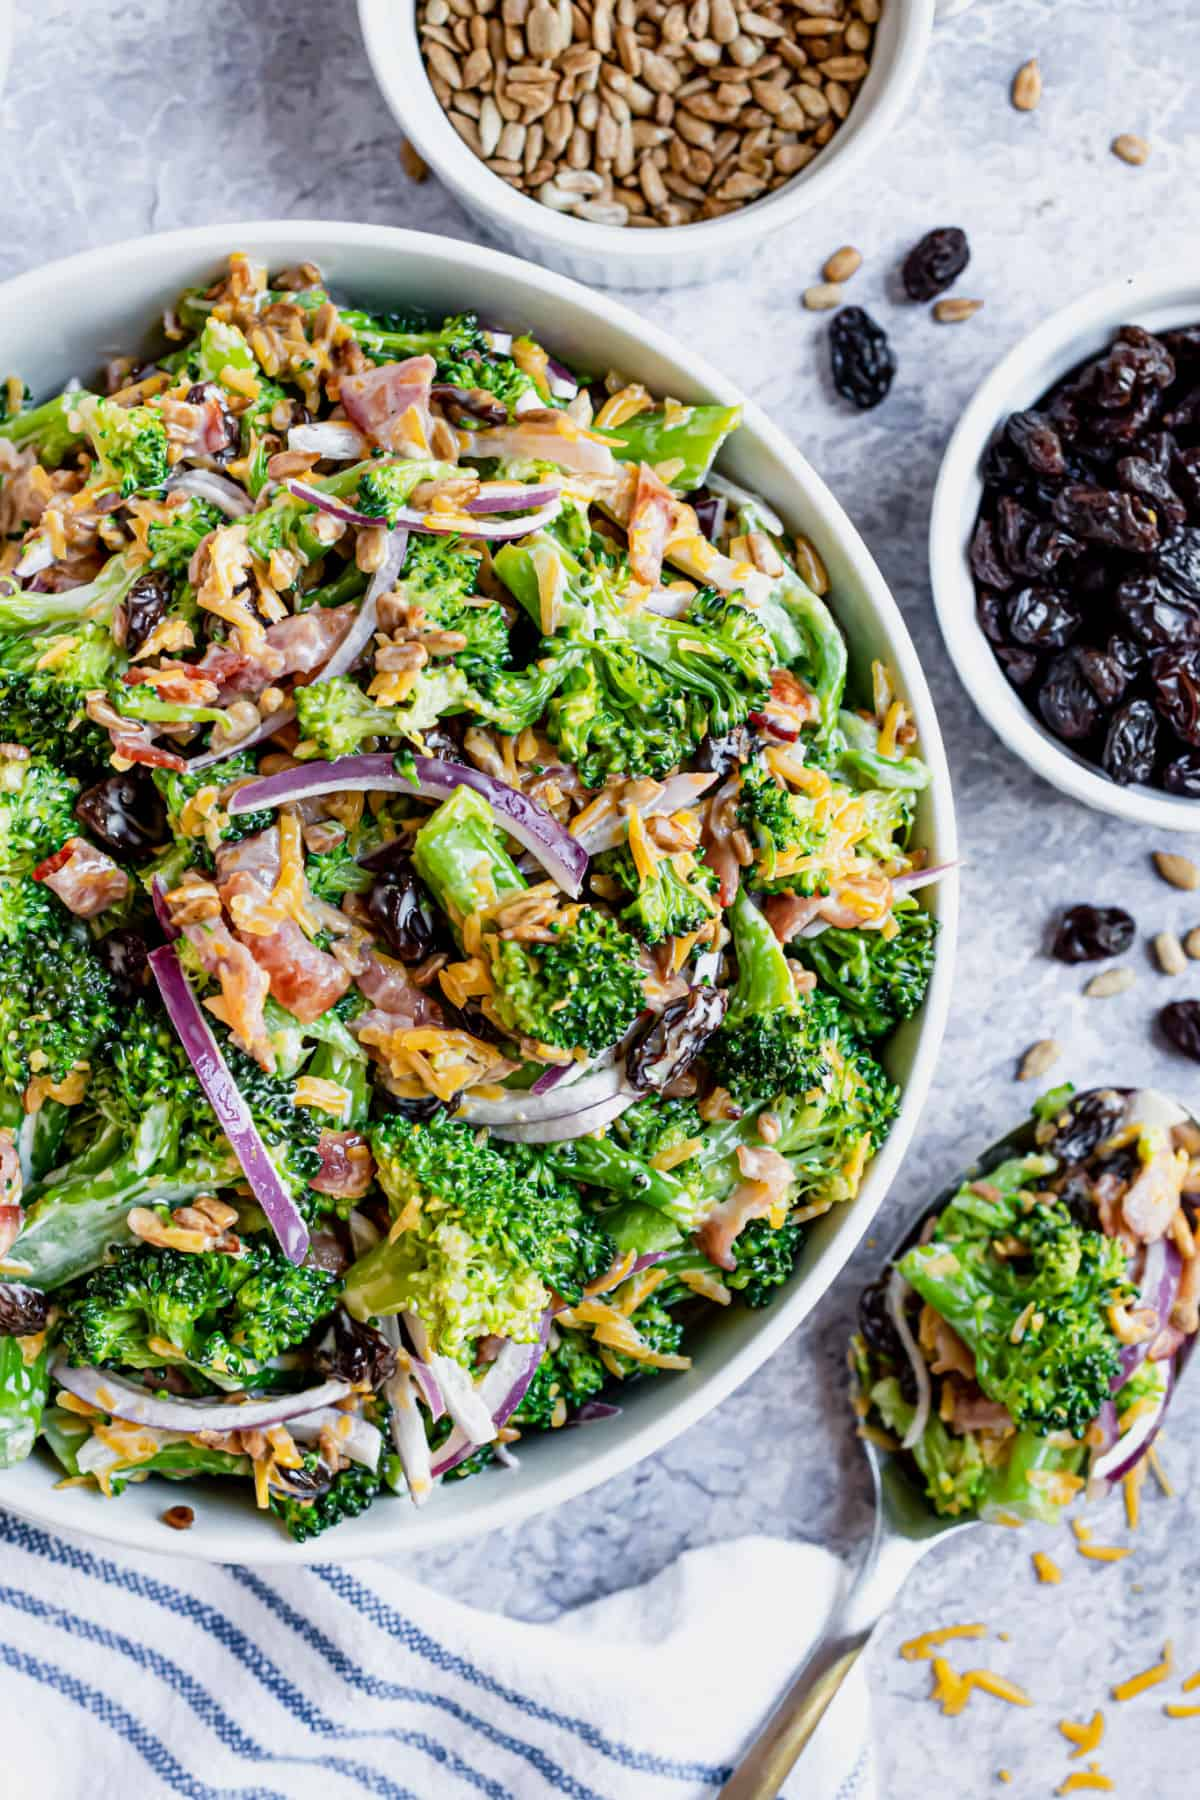 Broccoli salad in serving bowl with side of raisins and sunflower seeds.